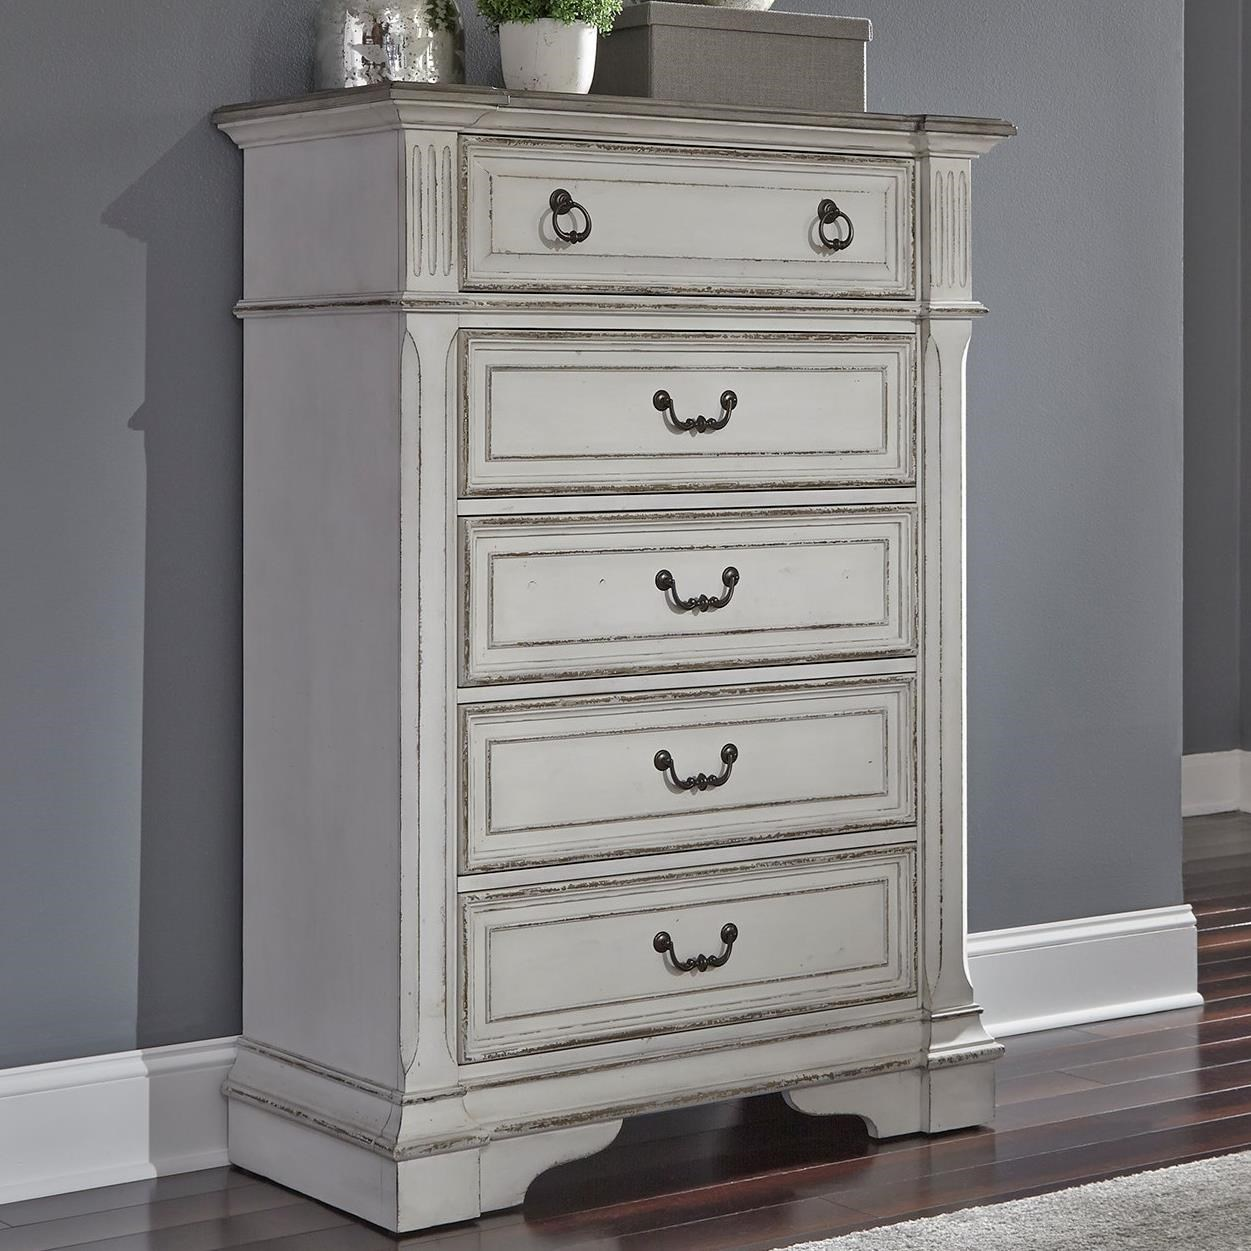 Abbey Park Chest of Drawers by Freedom Furniture at Ruby Gordon Home